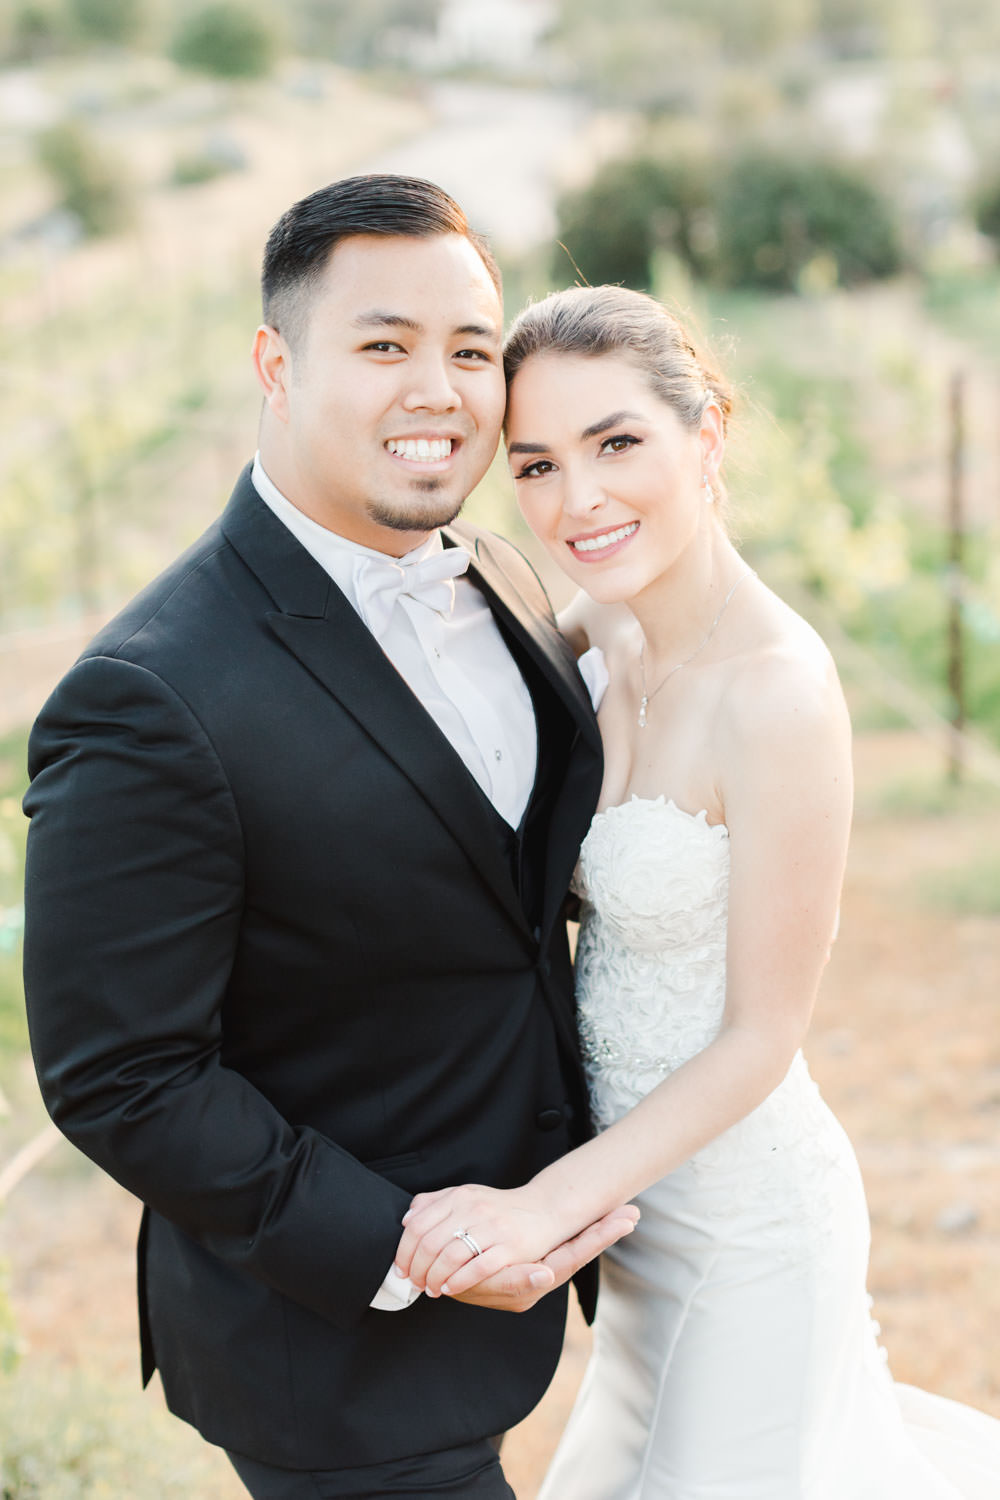 Bride and groom in the vineyards, Santalux Club wedding reception, Cavin Elizabeth Photography